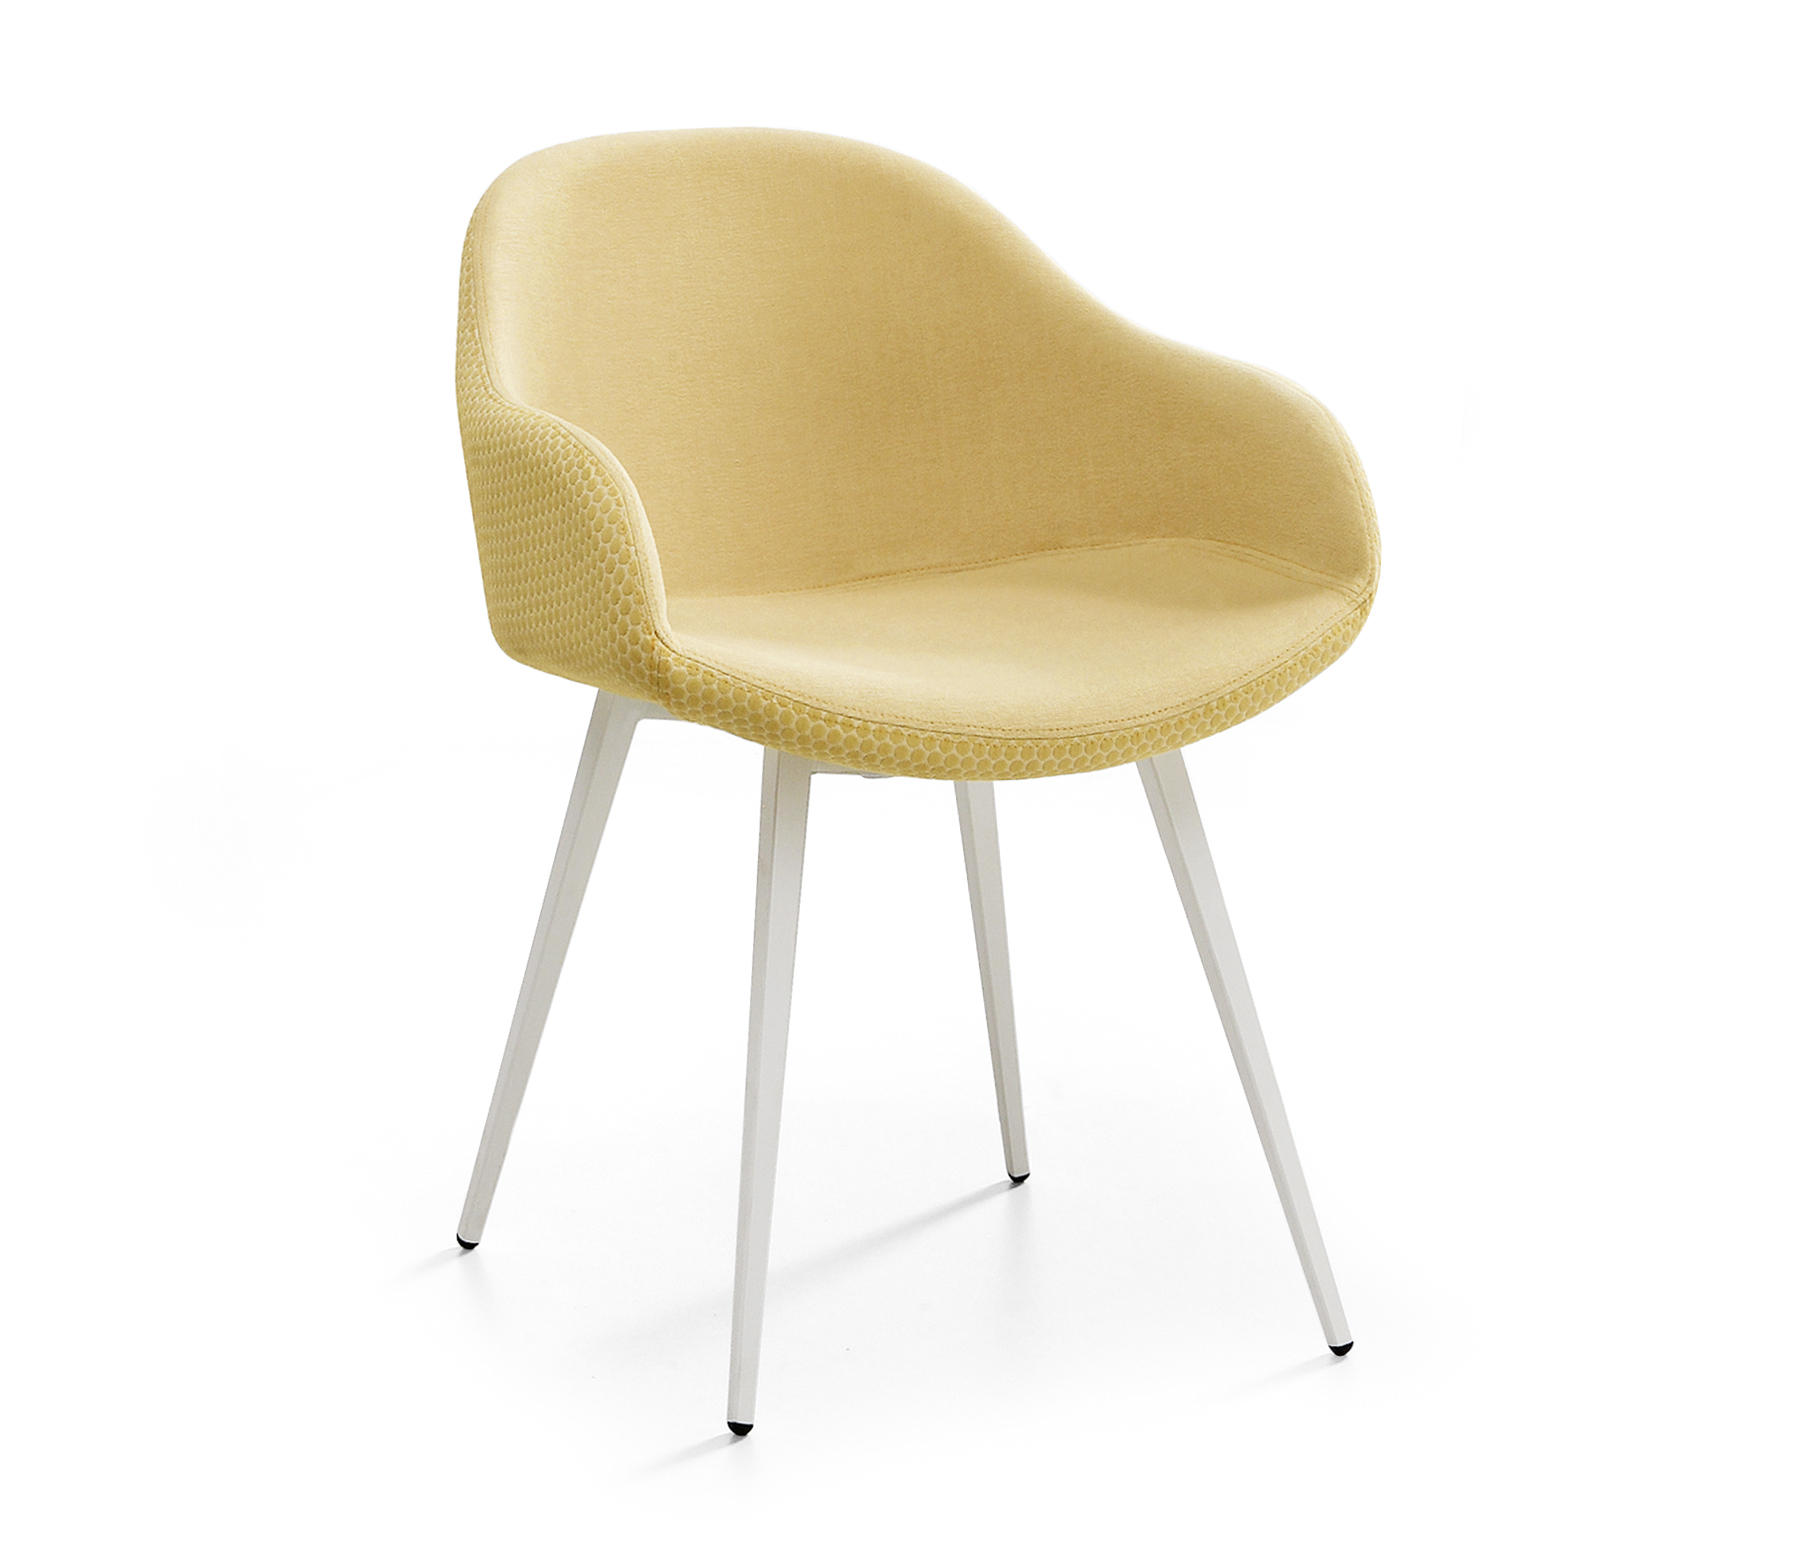 Sonny Pb Q Chairs From Midj Architonic